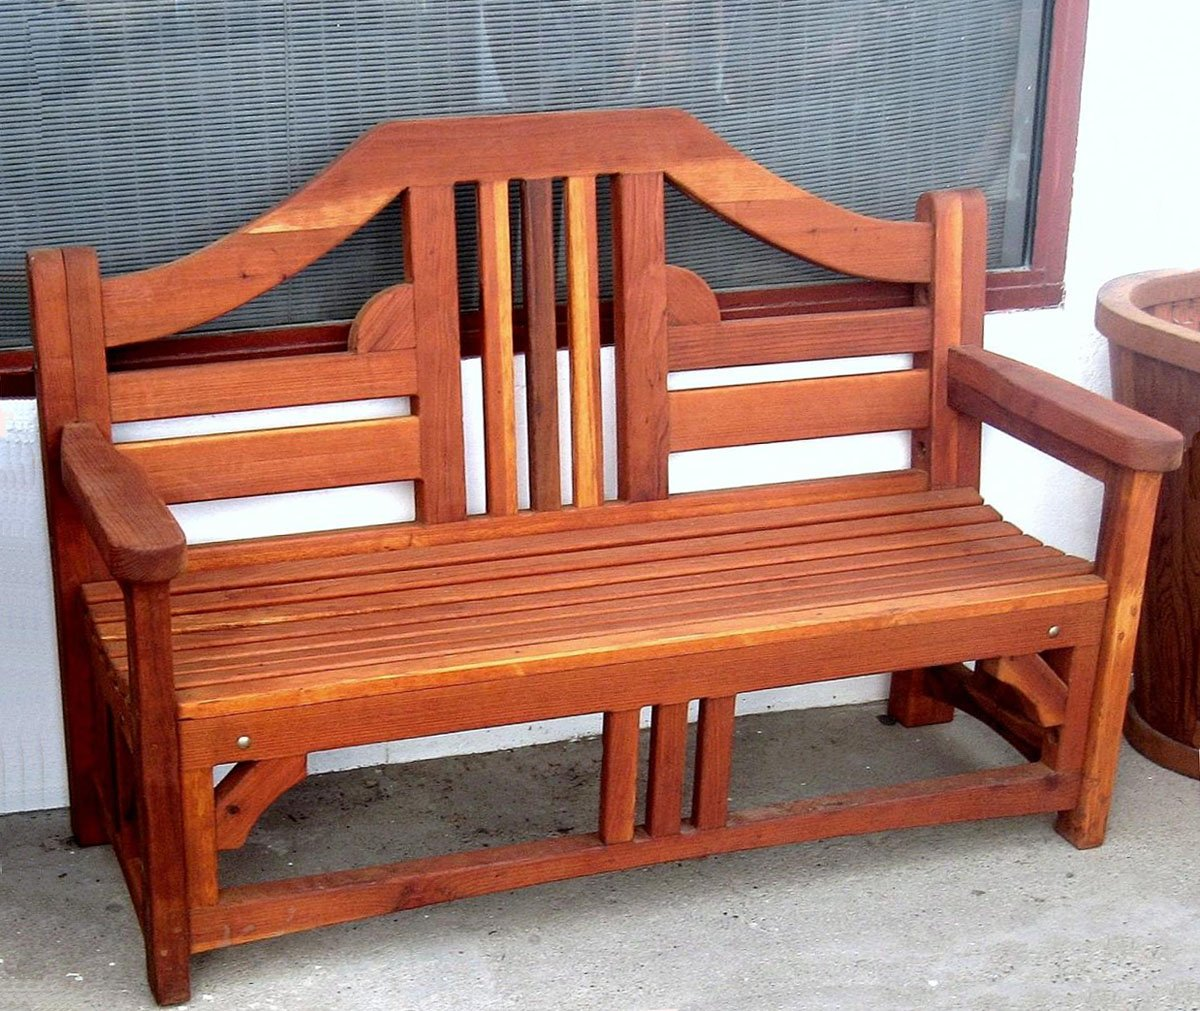 Alan S Bench Options 5 Ft Redwood No Cushion Engraving